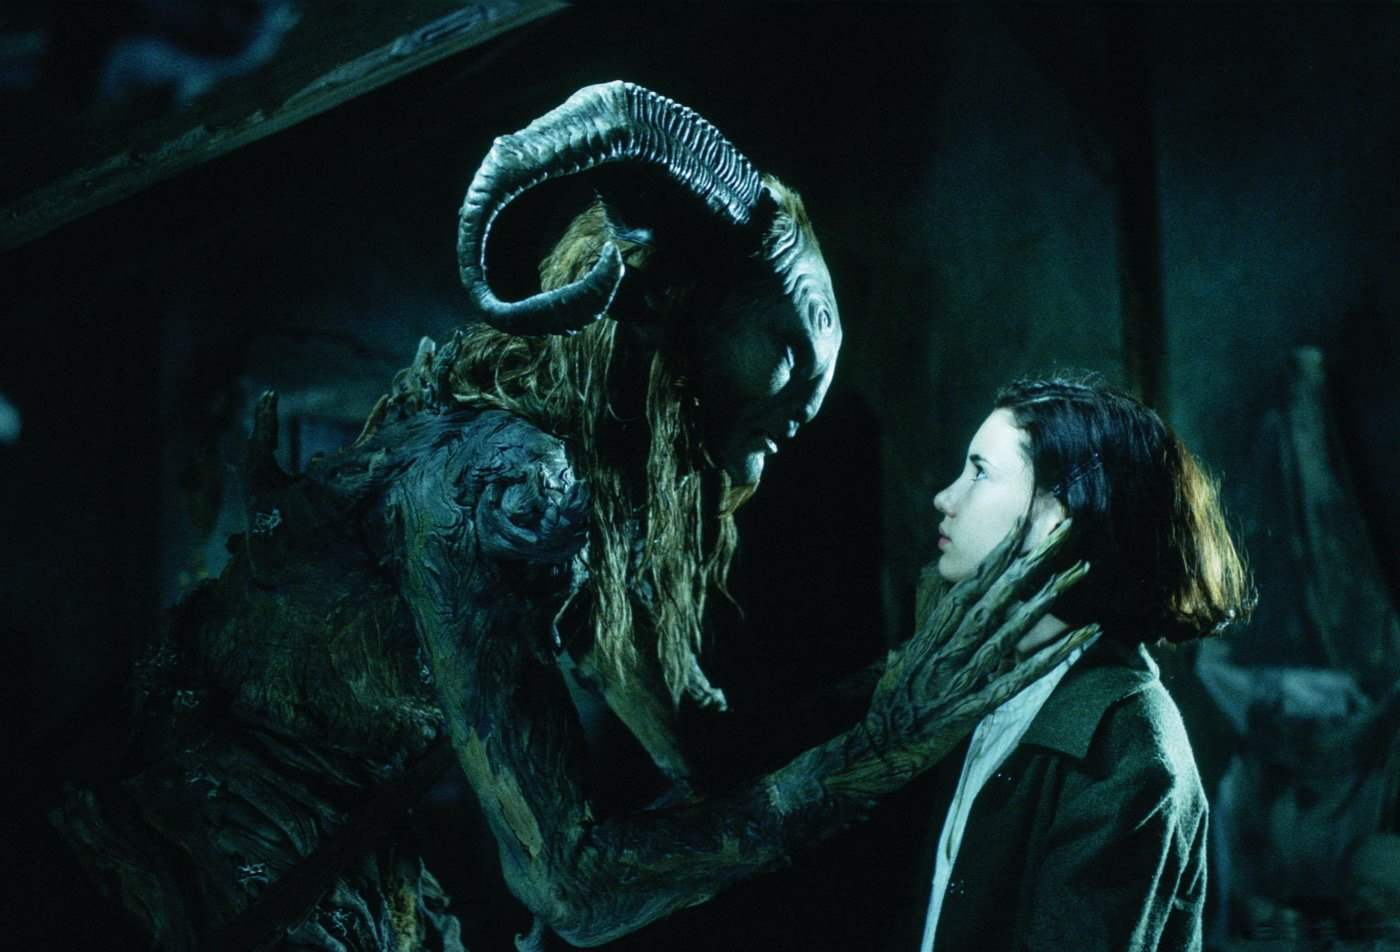 The Faun in Pan's Labyrinth